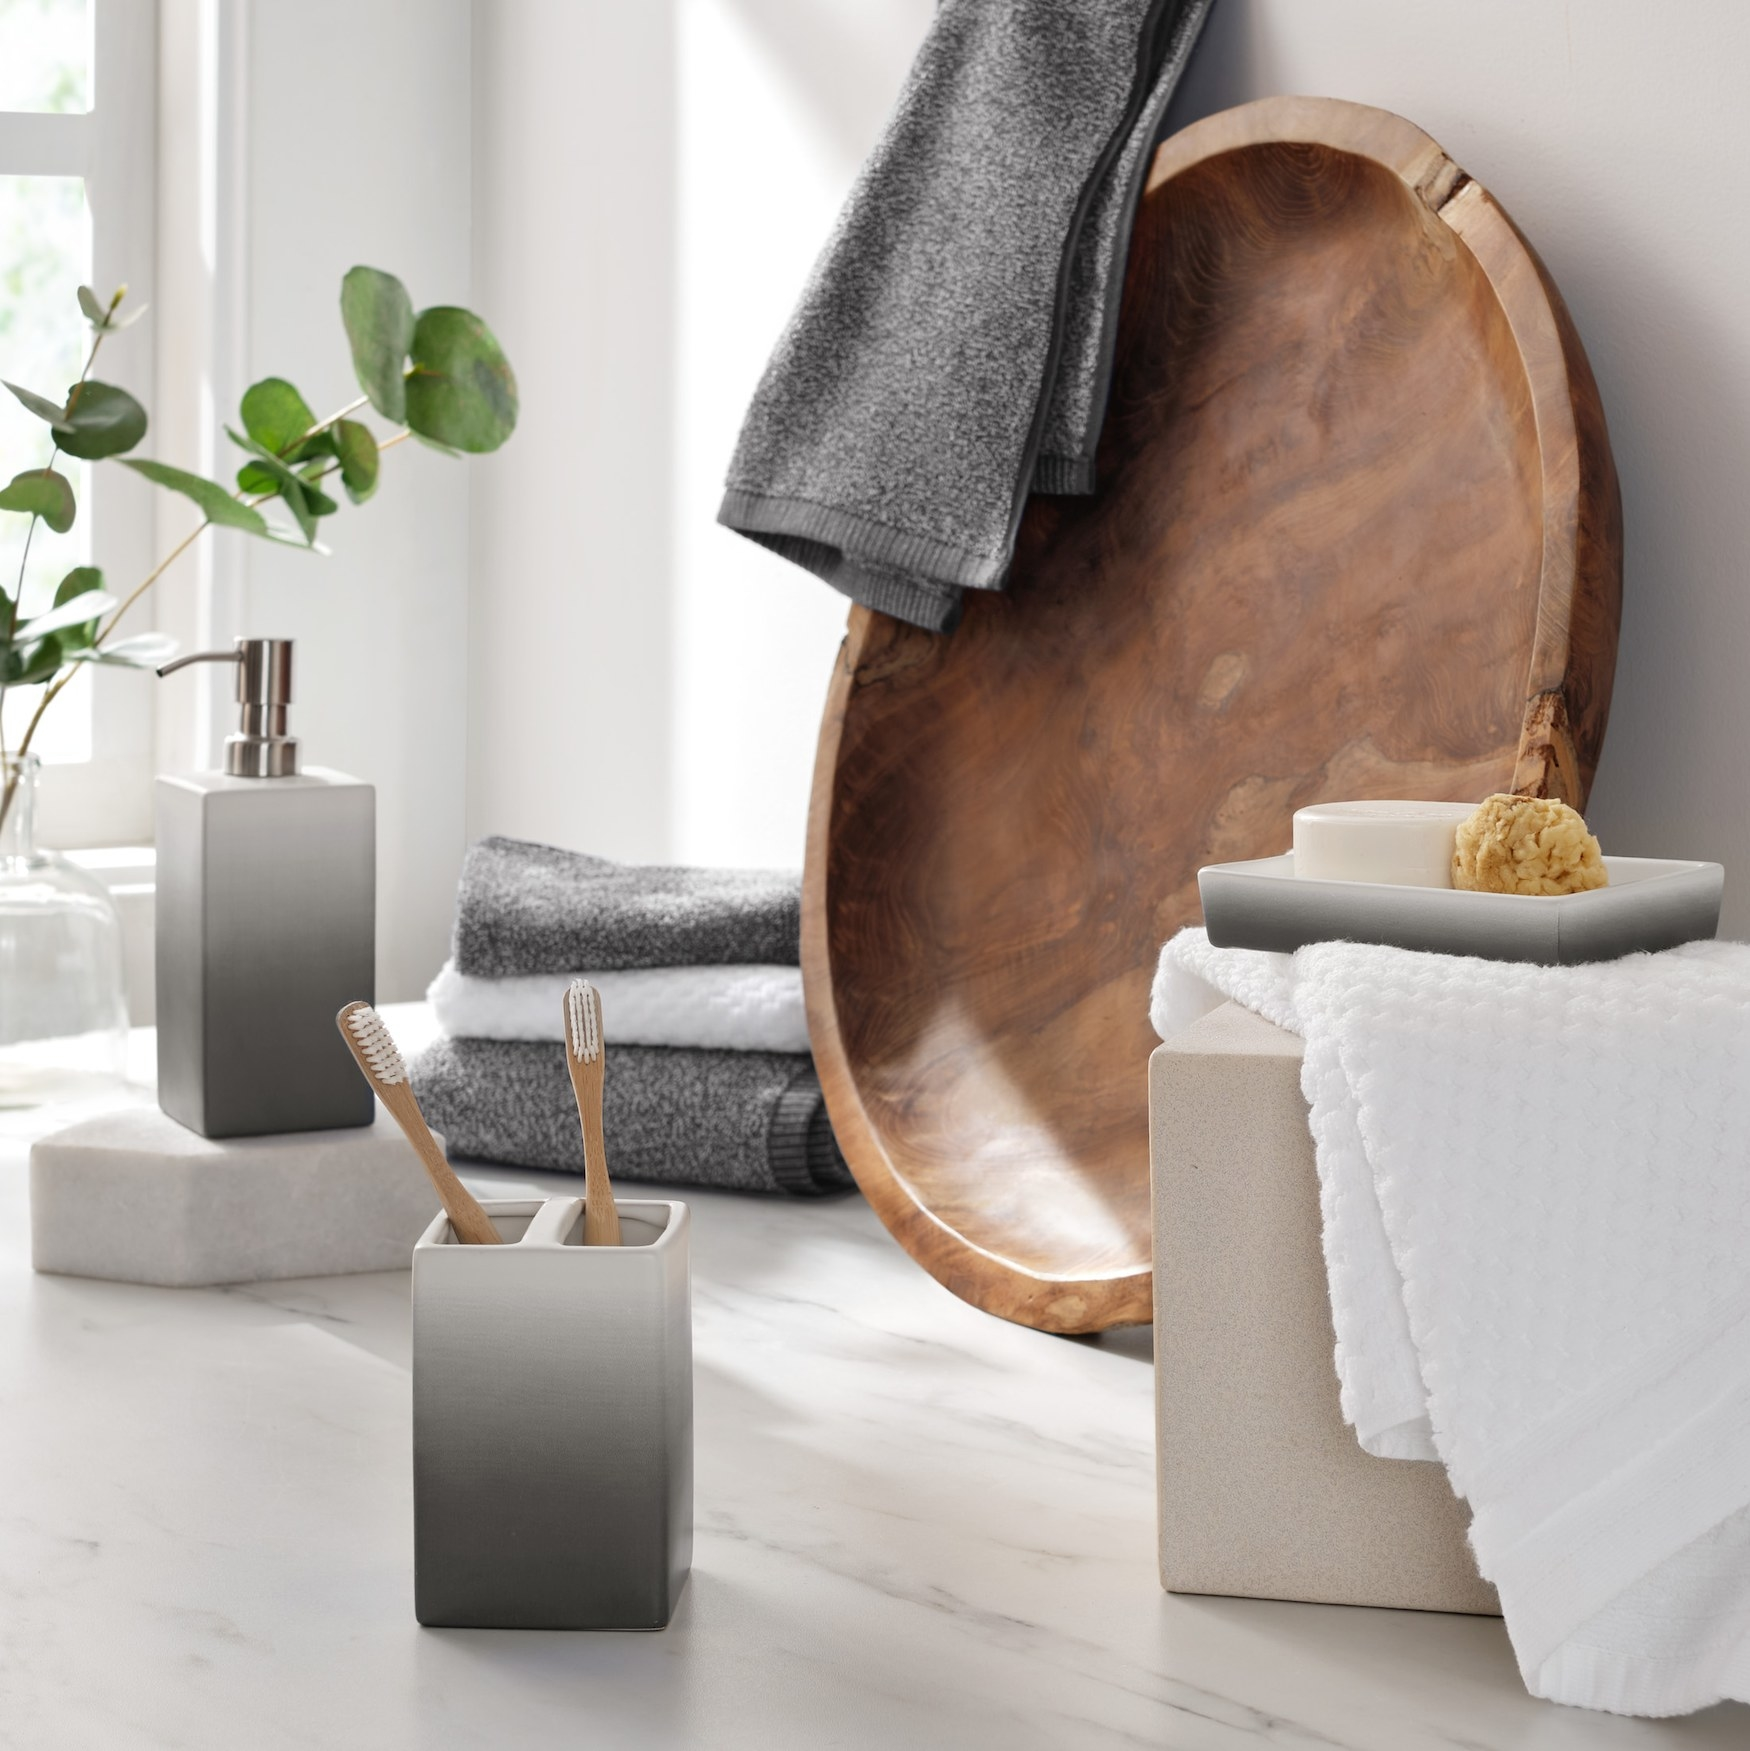 The gray ombre accessories set in a bathroom